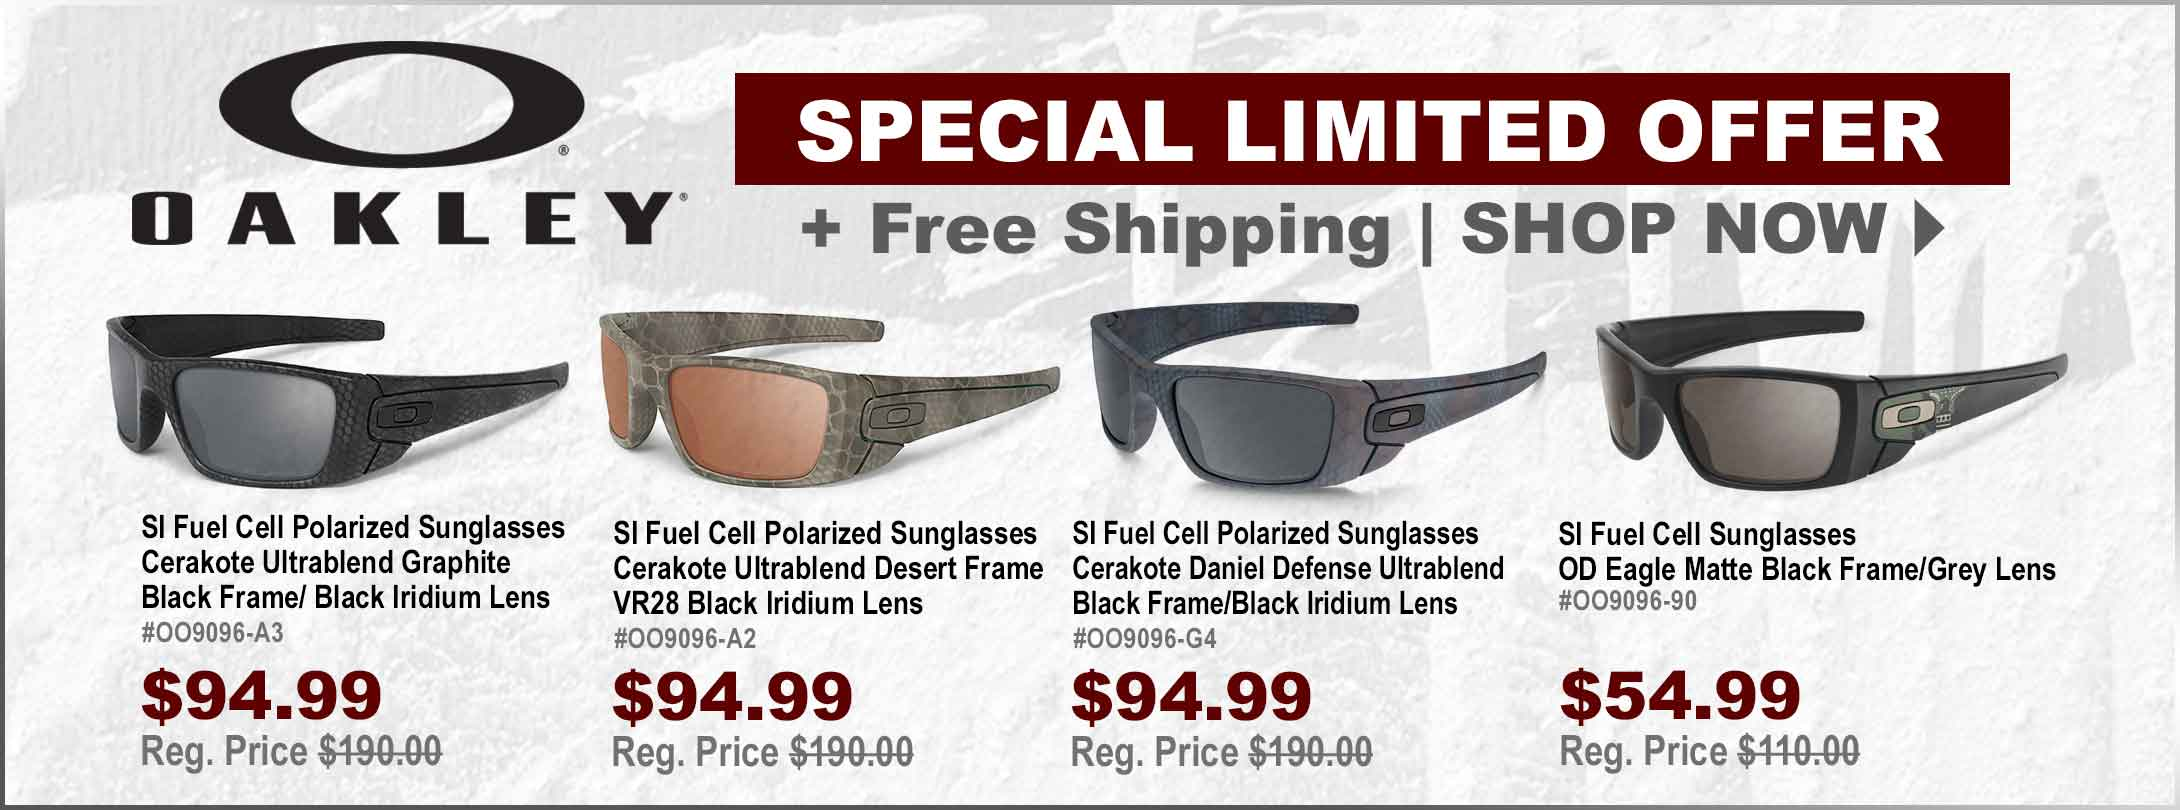 Special Limited Offer - 50% Off Select Oakley Fuel Cell Sunglasses